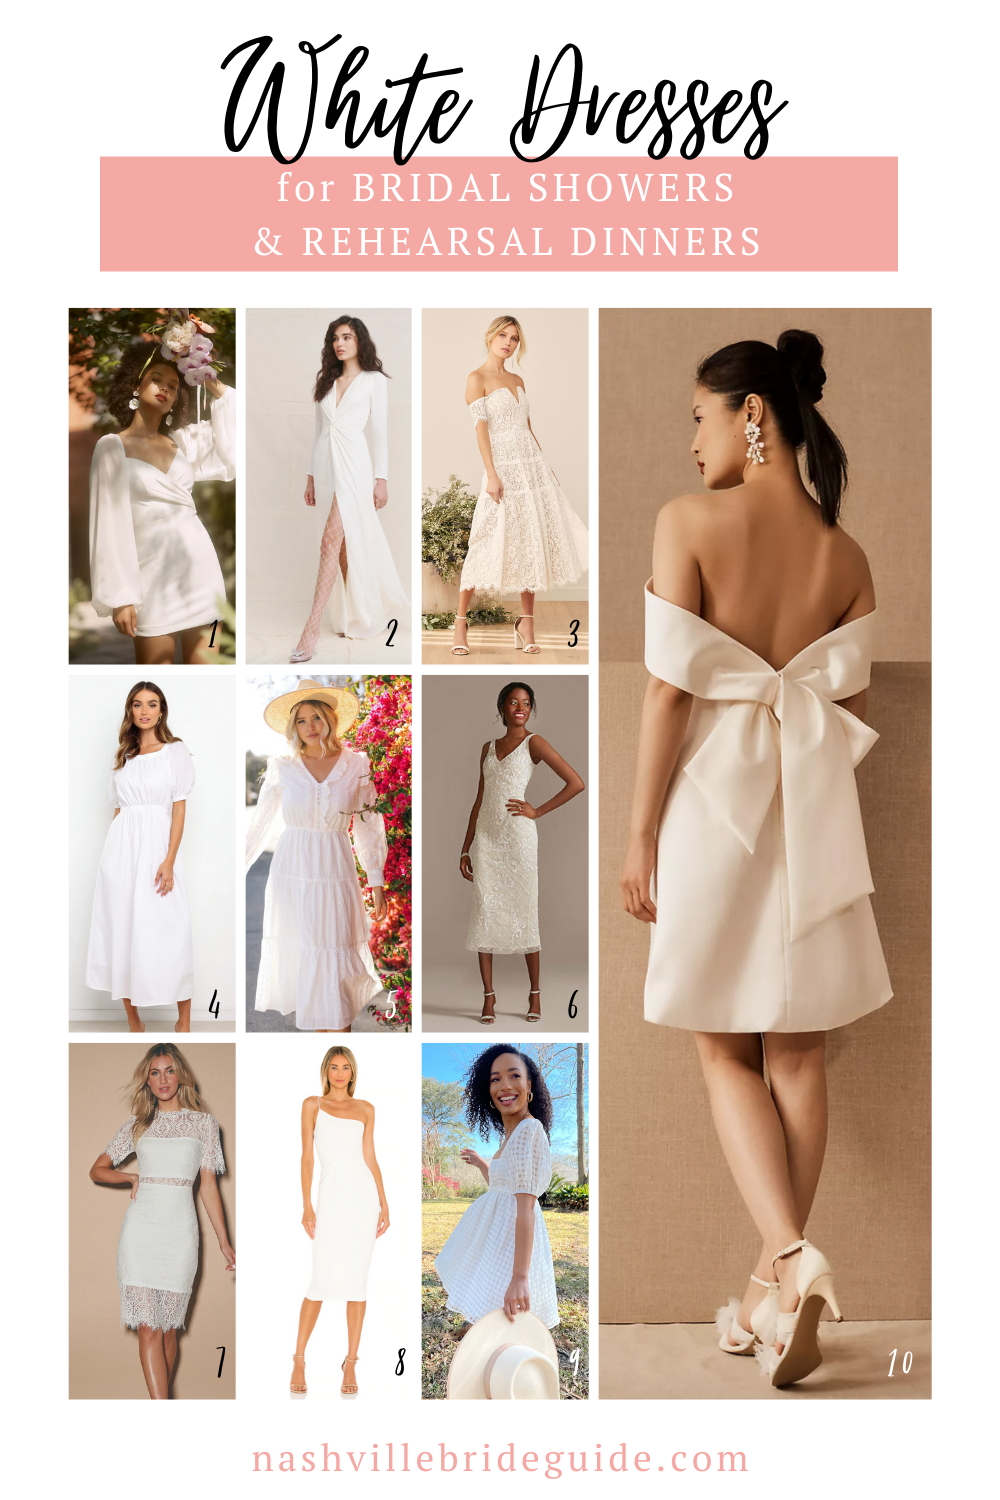 The Best White Dresses for Bridal Showers and Rehearsal Dinners